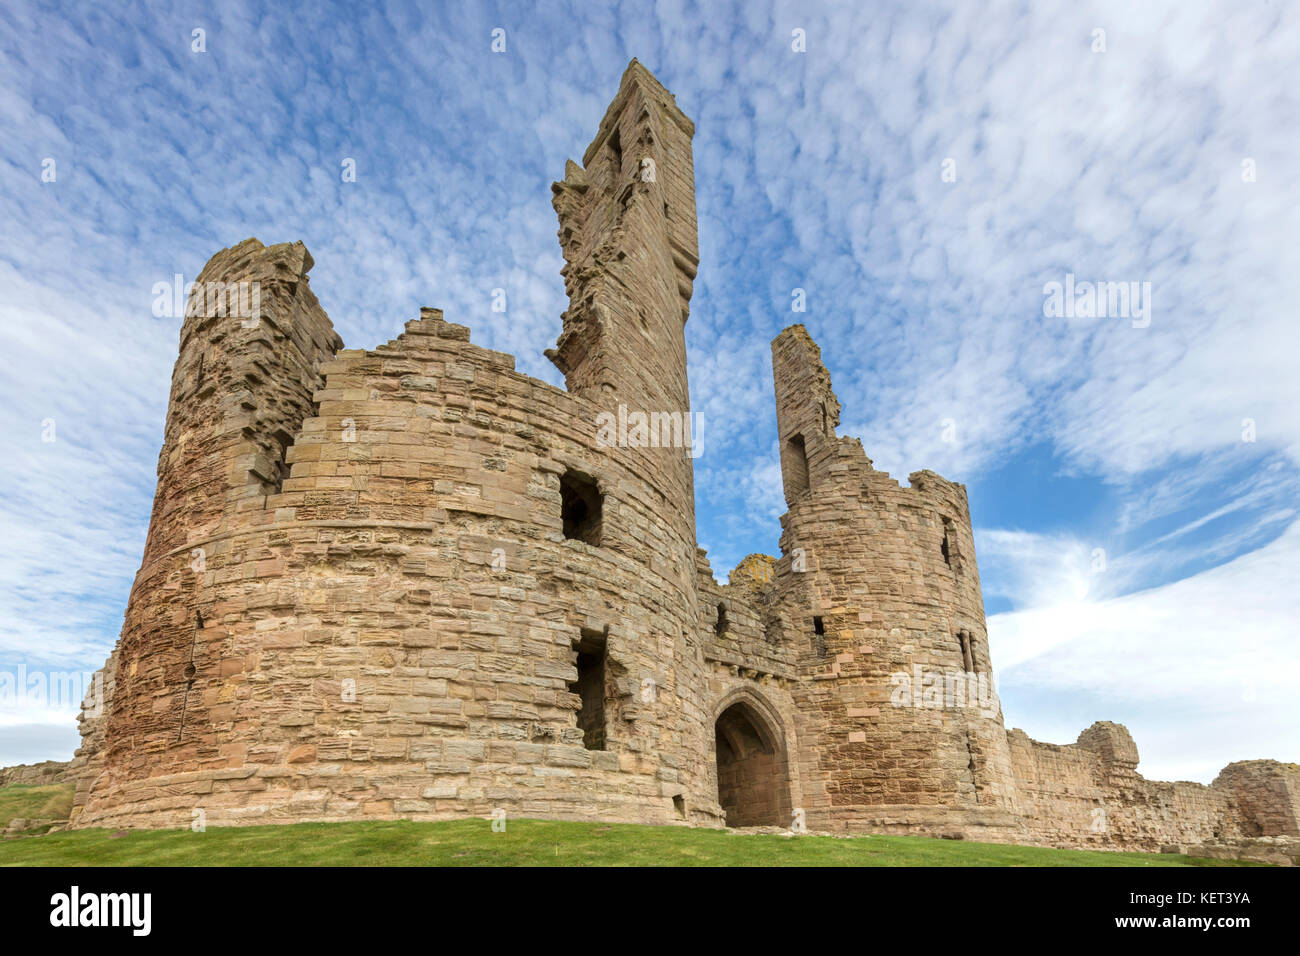 Dunstanburgh Castle on the Northumbrian coast, England, UK - Stock Image